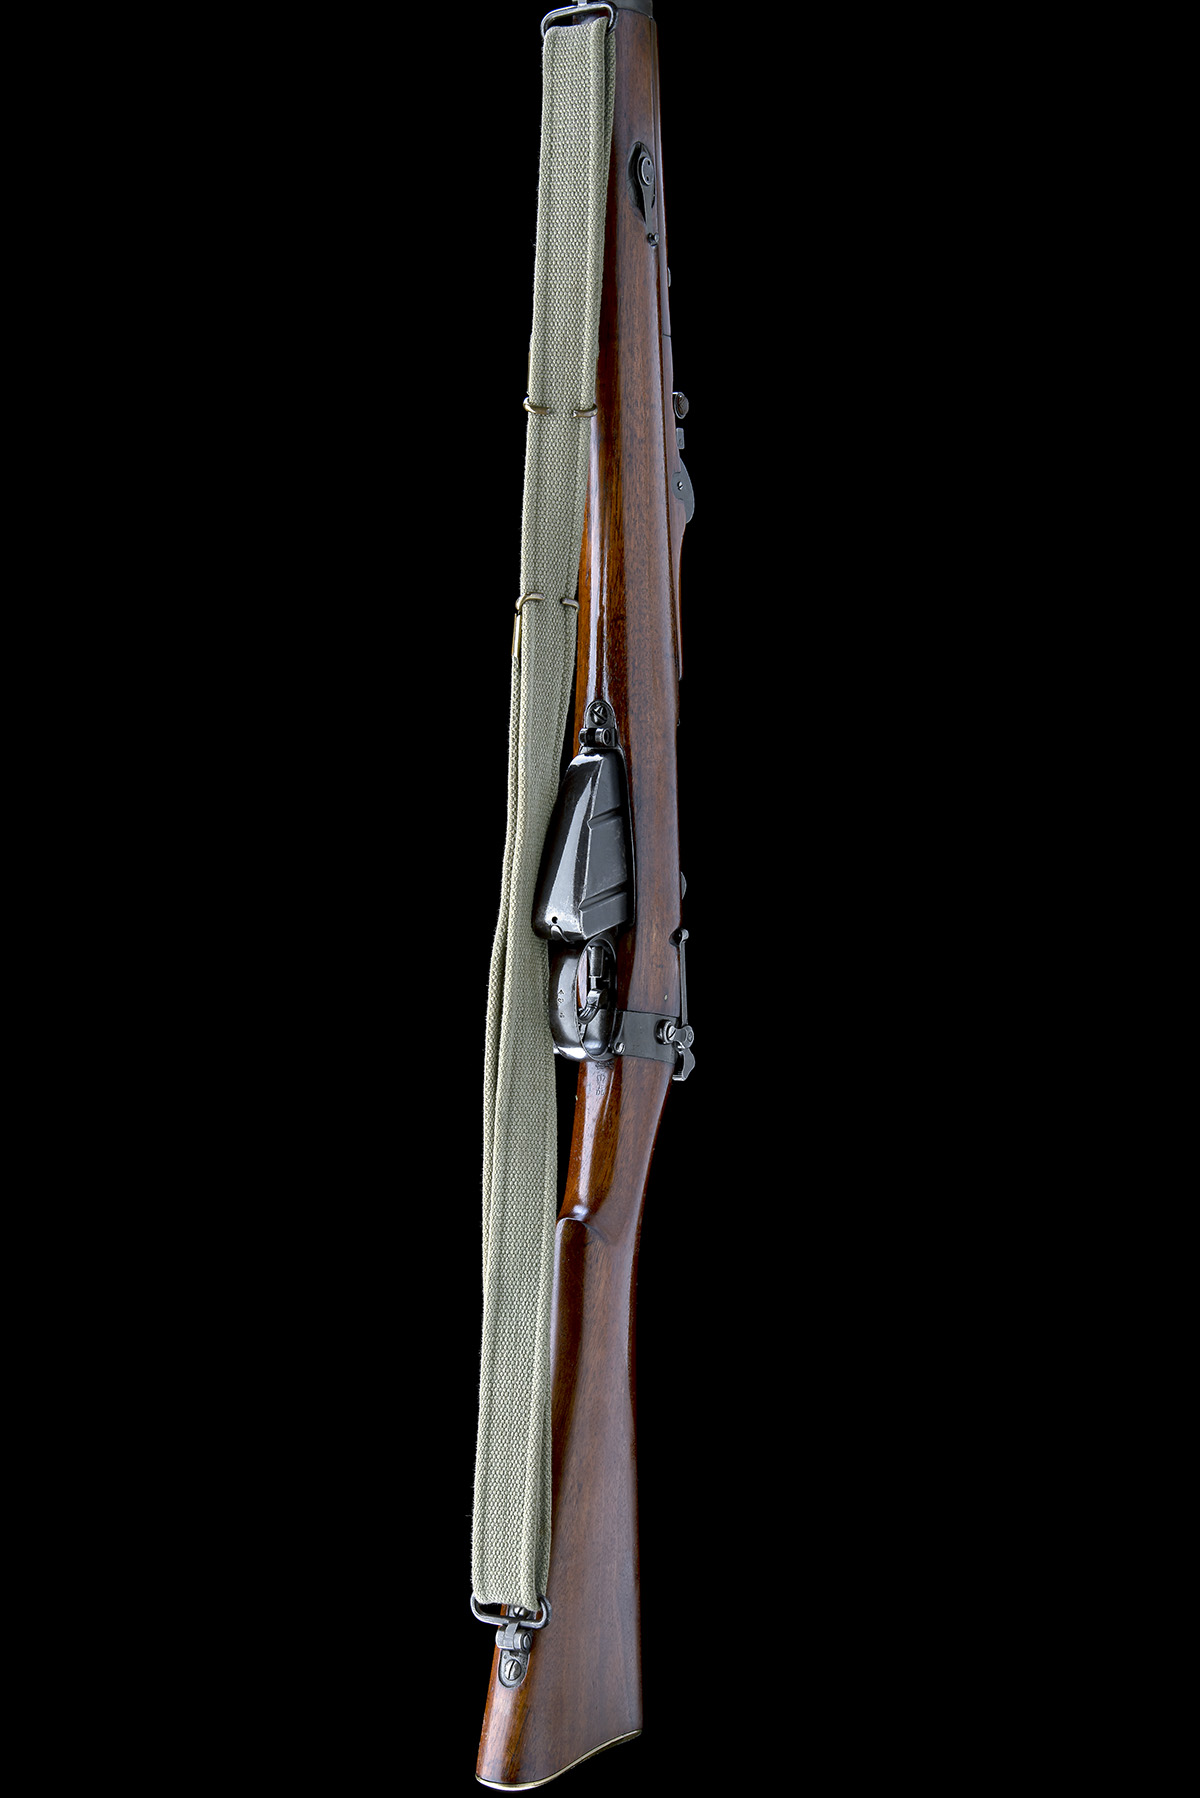 B.S.A. CO. SPARKBROOK A RARE .303 BOLT-ACTION REPEATING SERVICE-RIFLE, MODEL 'SHT L.E. MK 1*', - Image 6 of 11